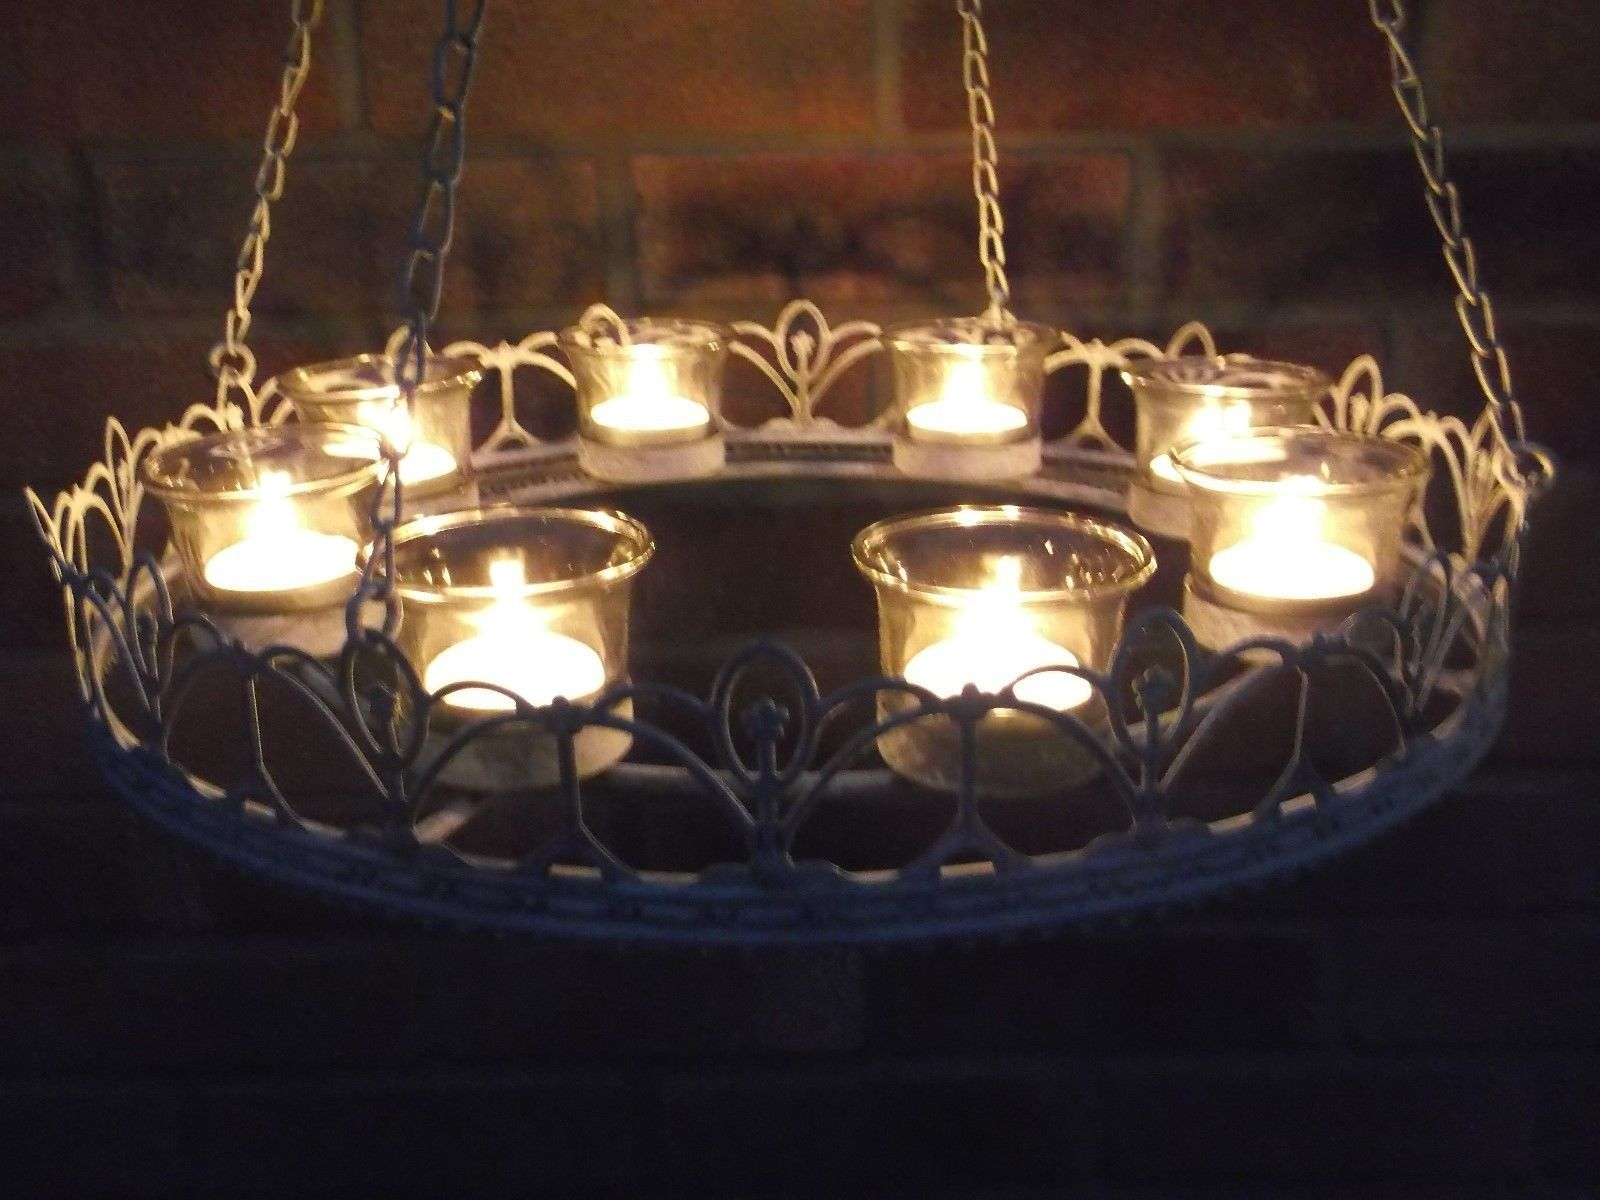 Vintage style french grey hanging tea light chandelier candle holder vintage style french grey hanging tea light chandelier candle holder metal new ebay aloadofball Choice Image